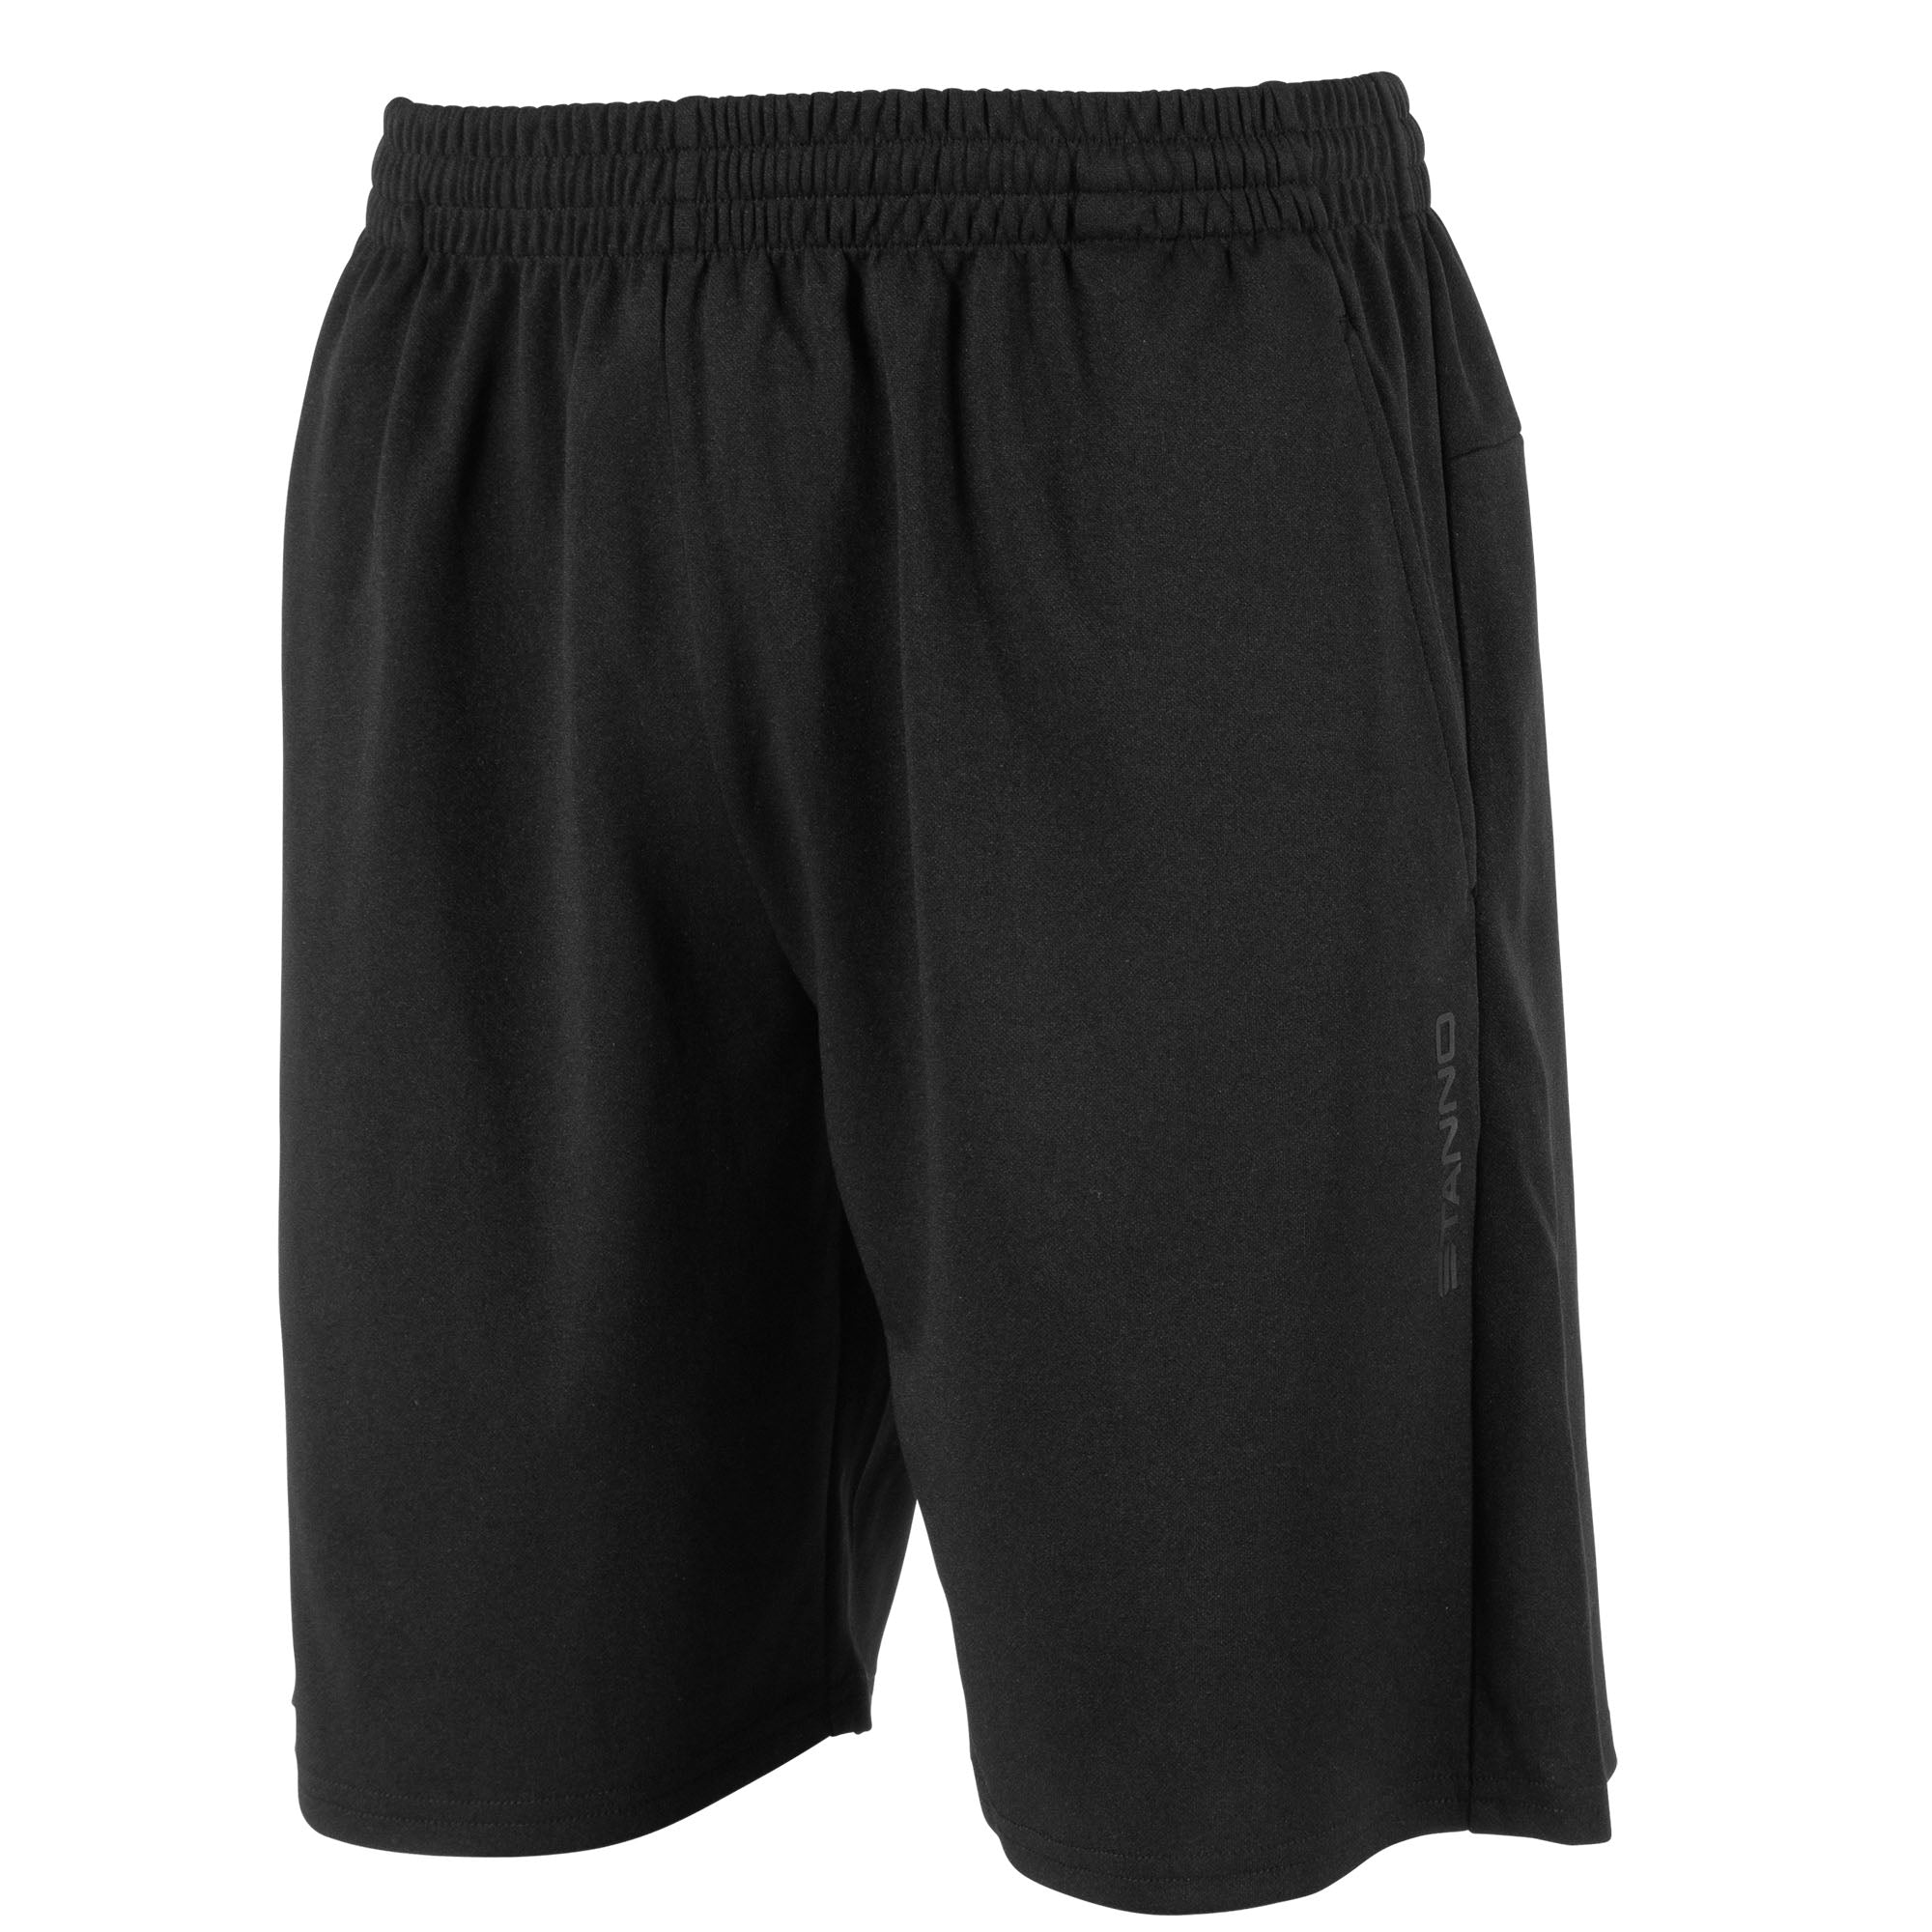 Front view of Stanno Functionals Training Short in black with subtle tone Stanno text logo on left leg